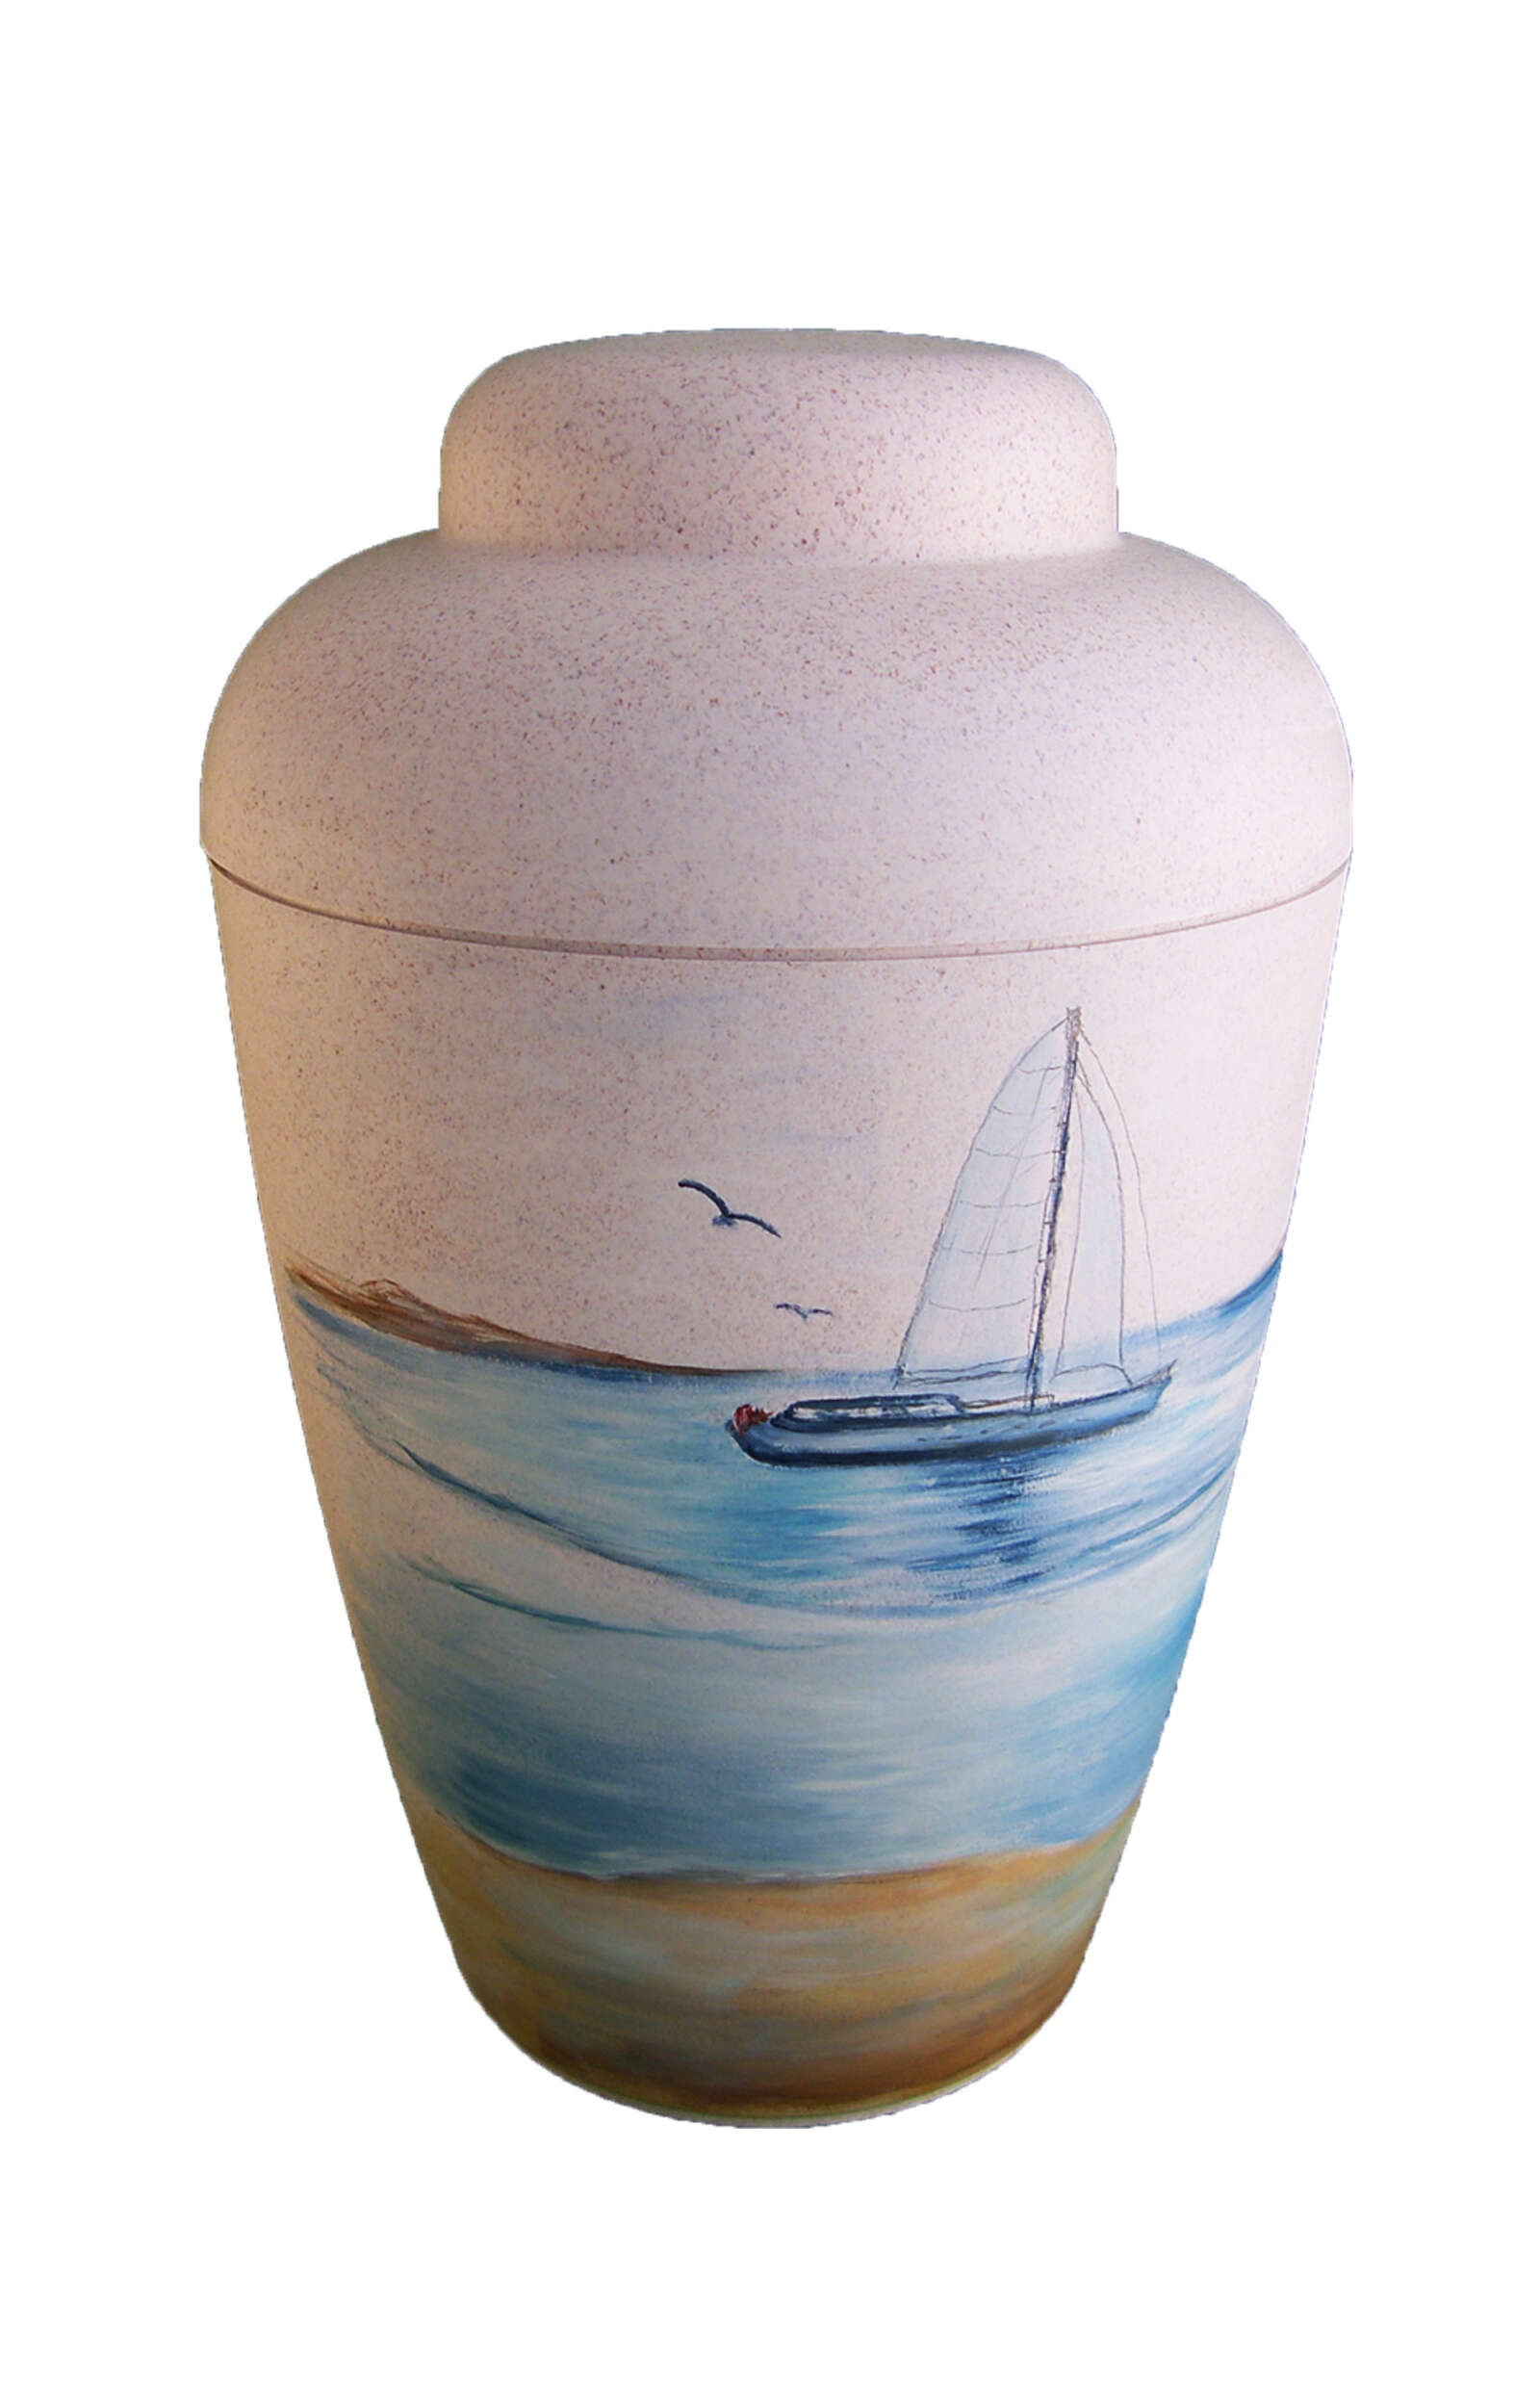 en BW1504 biodigradable urn sea sailing boat white funeral urns for human ashes